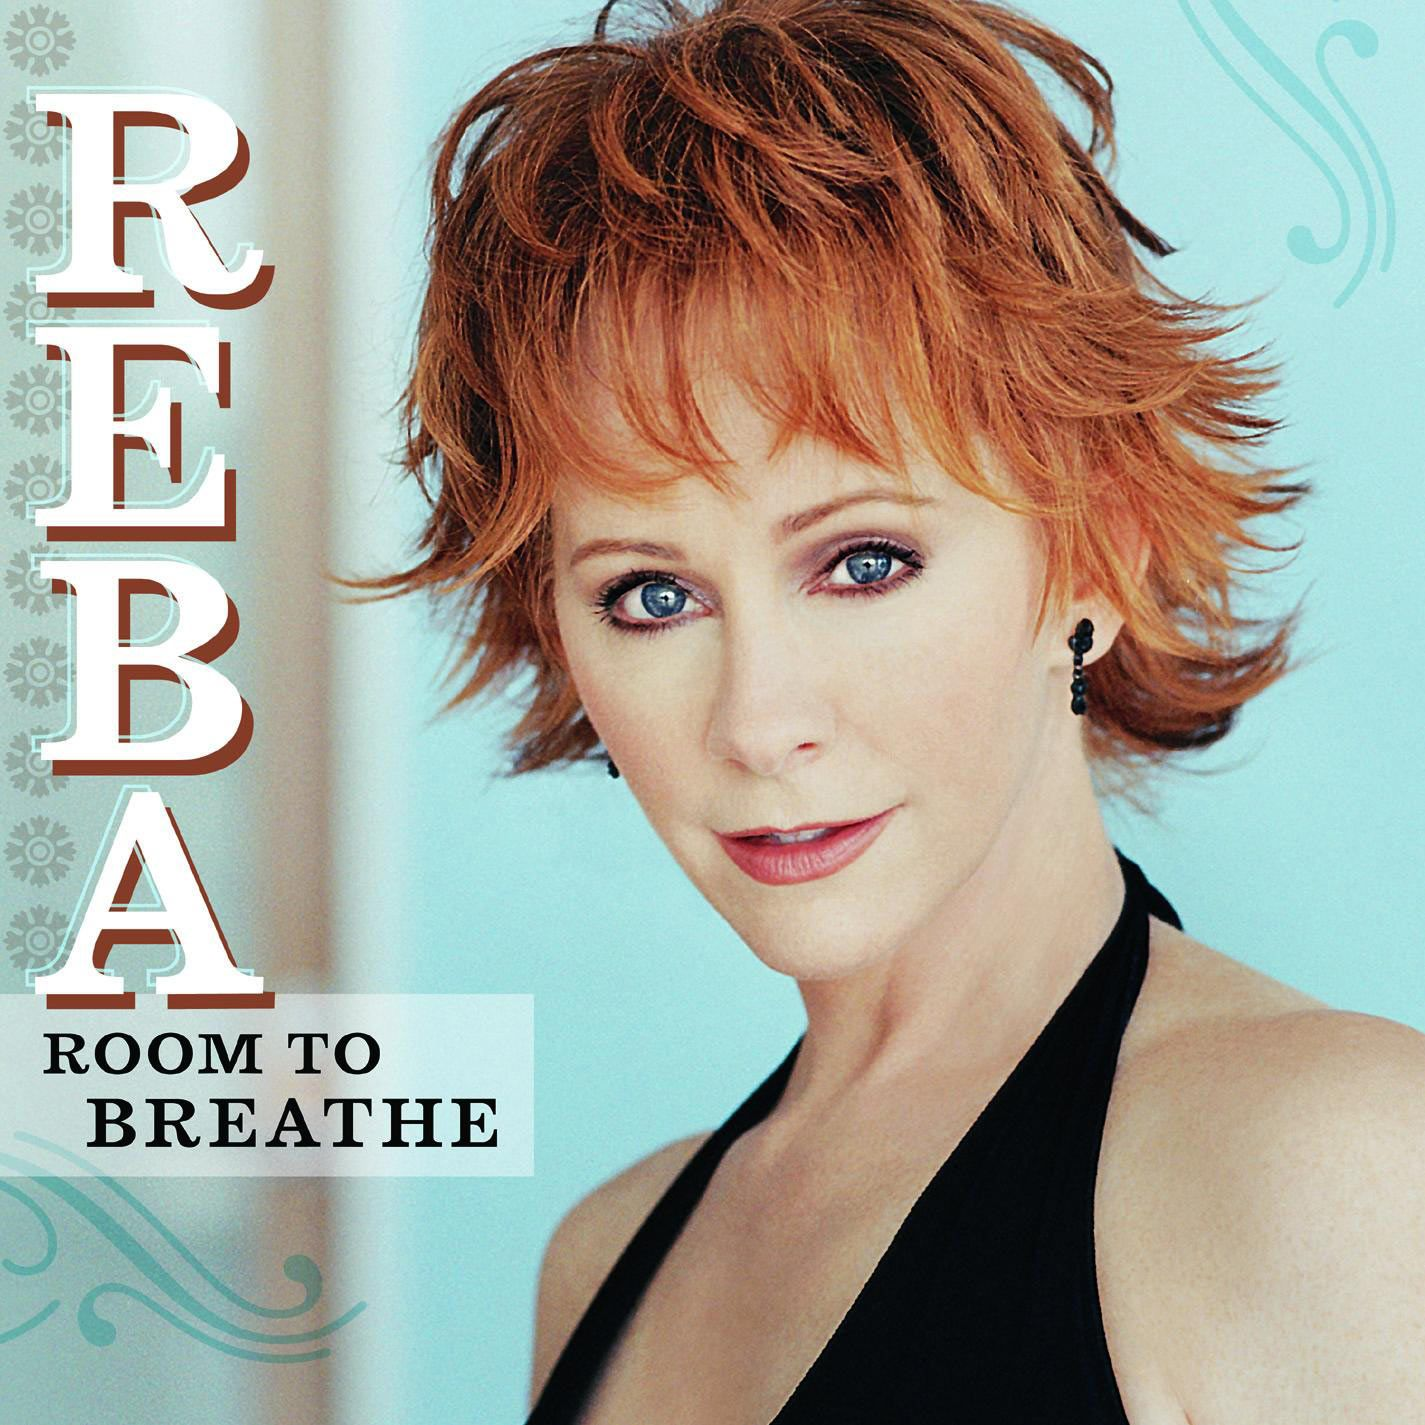 Reba McEntire - Room To Breathe album cover